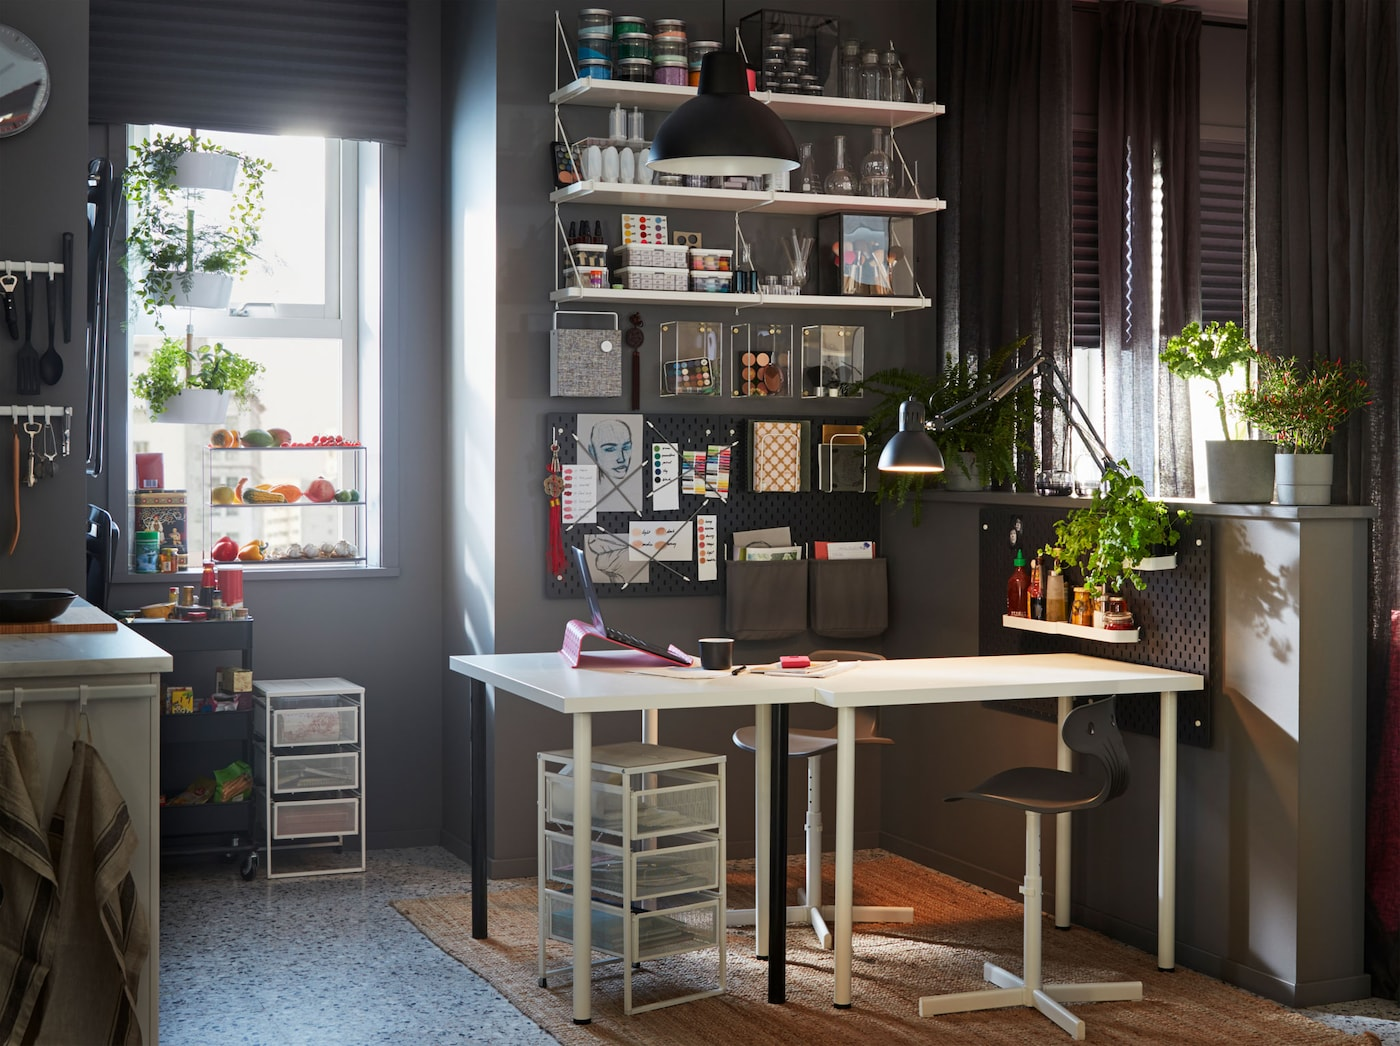 A room with IKEA LINNMON/ADILS white table, swivel chairs, open mesh drawer units and study supplies on one wall.